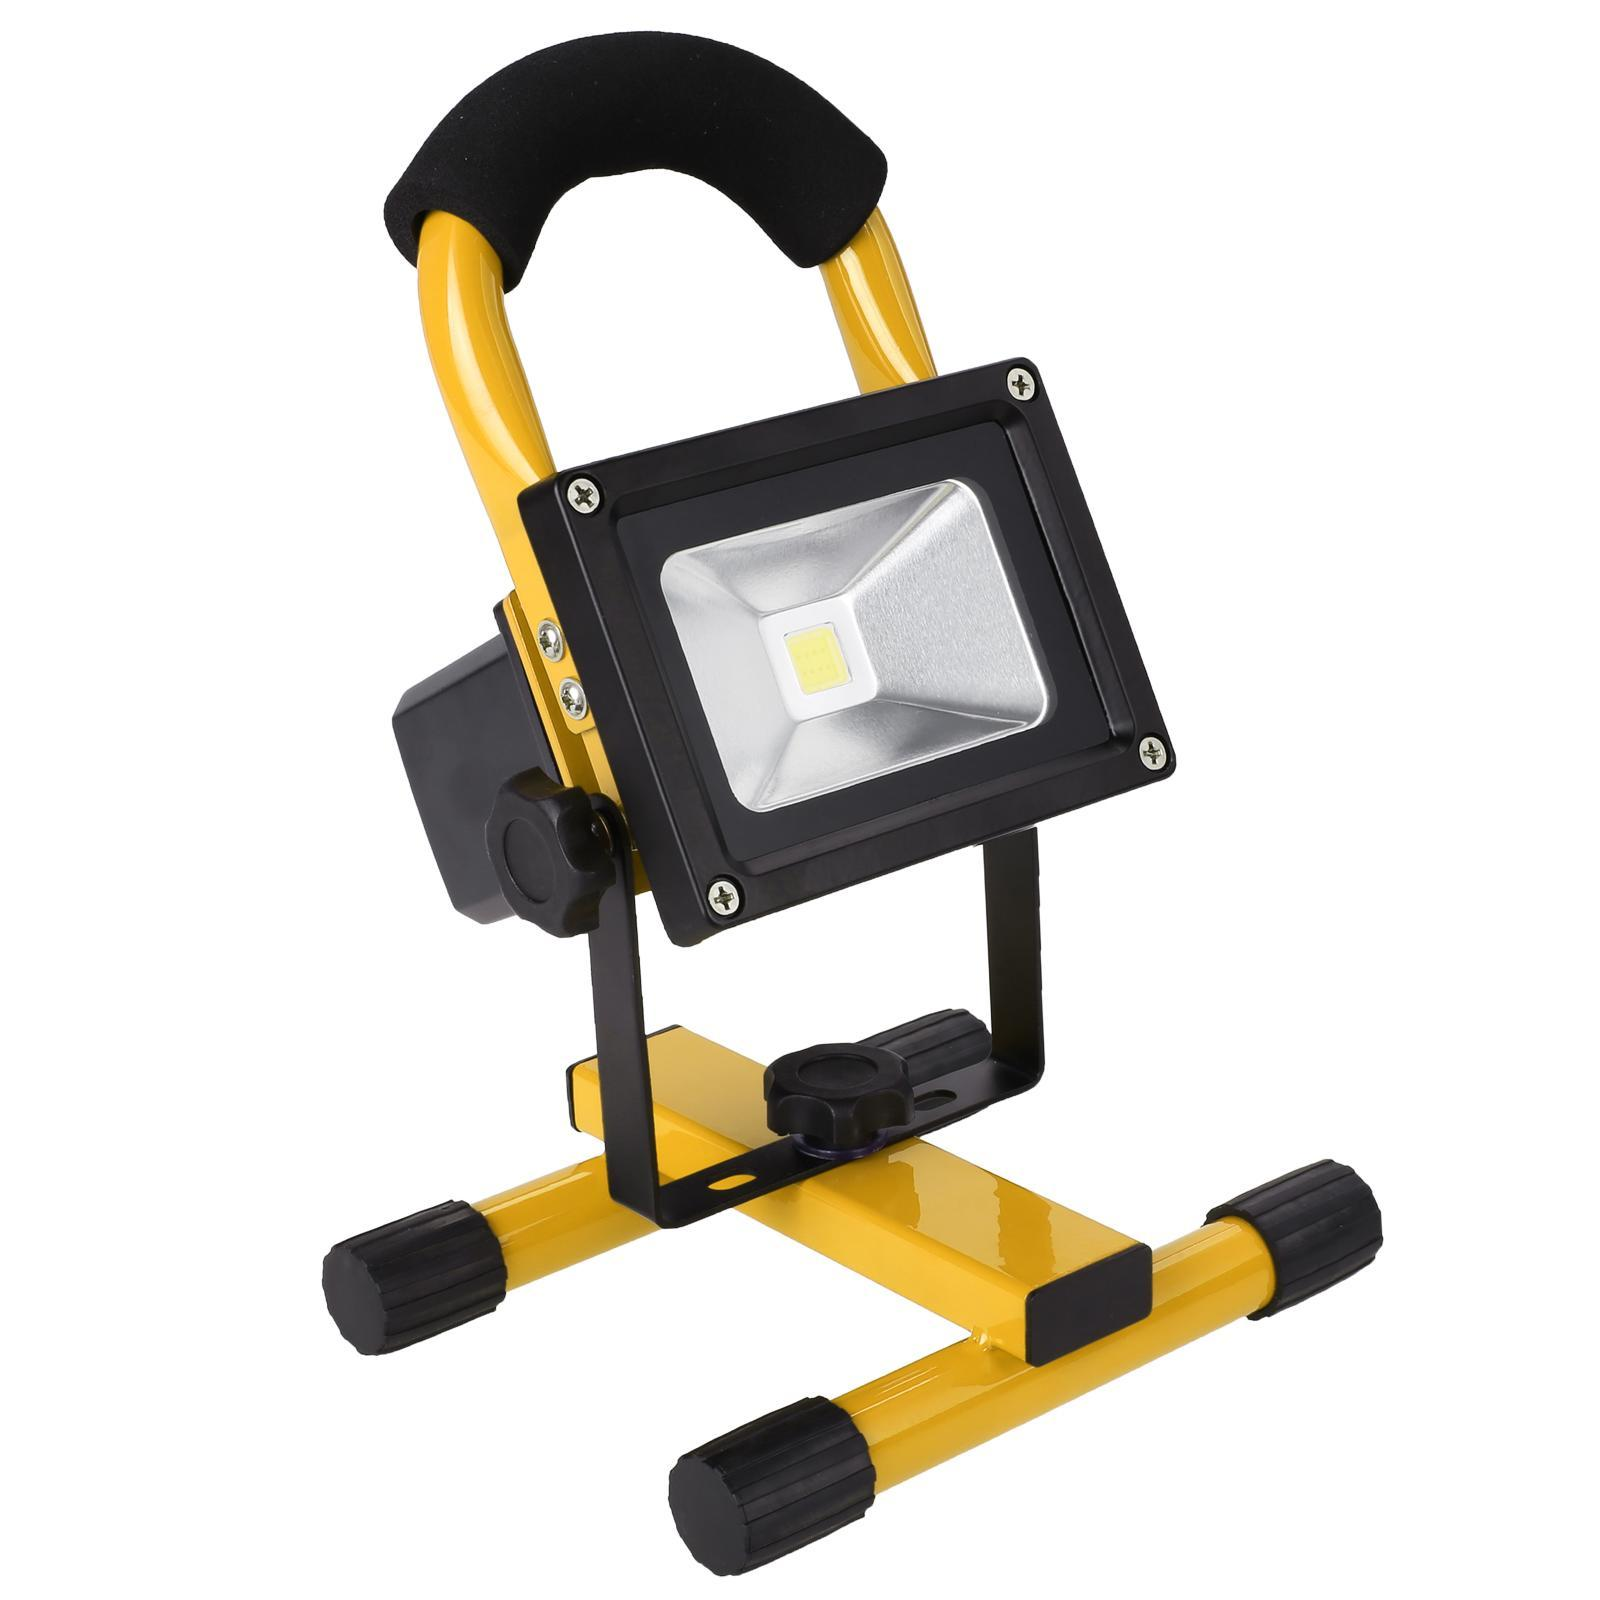 10W LED Flood Light, Outdoor Camping Hiking Wireless Rechargeable Lamp US Plug  SPPYY